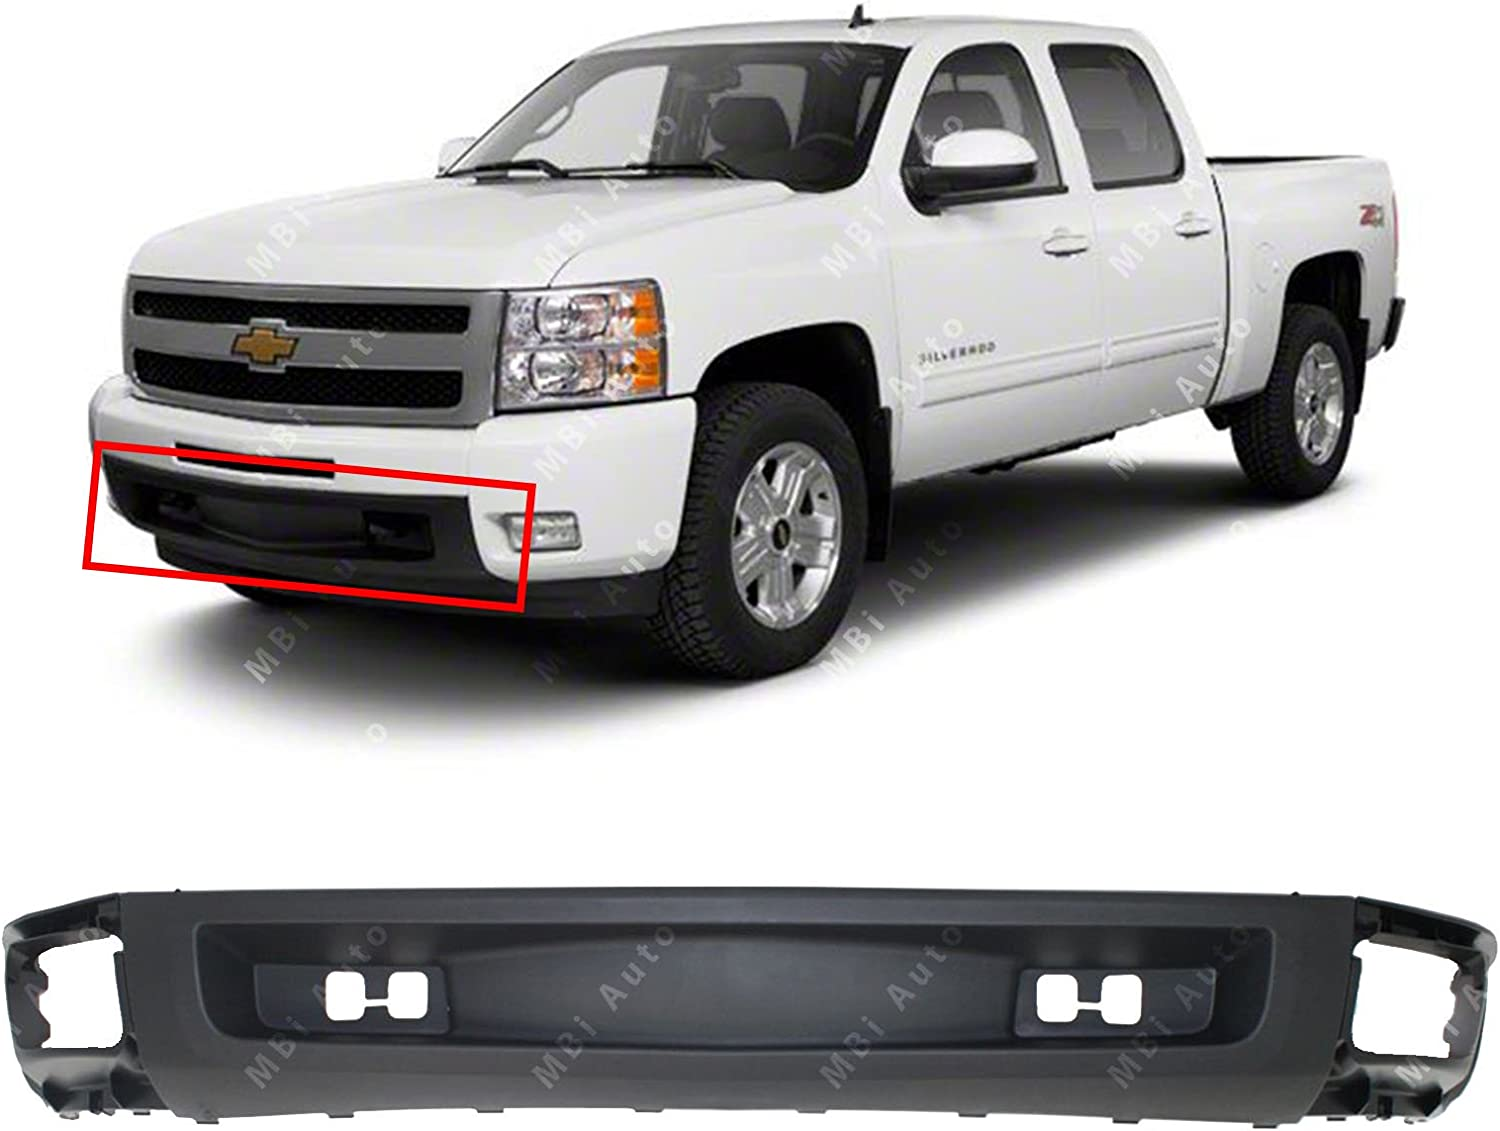 Amazon Com Mbi Auto Textured Black Lower Front Bumper Air Deflector Valance For 2007 2013 Chevy Silverado 1500 Pickup Gm1092192 Automotive